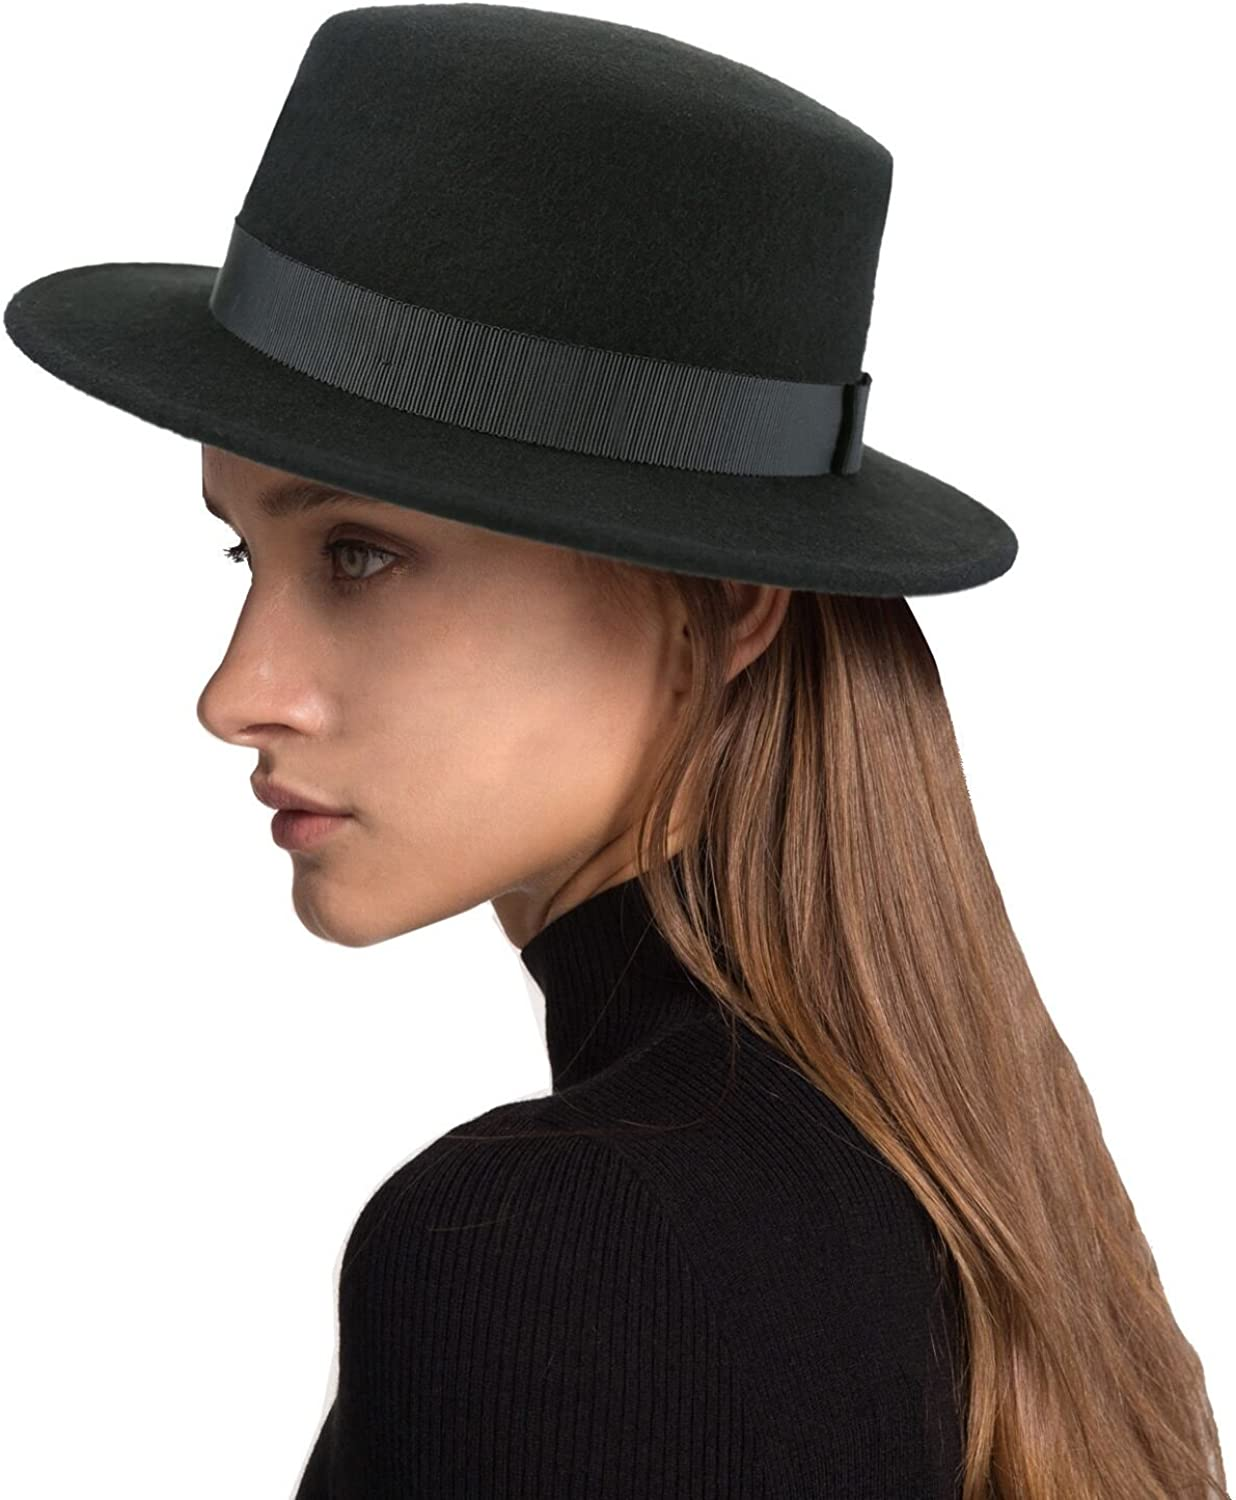 Deevoov Boater Hat Women Wool Felt Flat Top Hat Party Church Bowknot Derby Trilby Hats, Black, 57CM 22.44